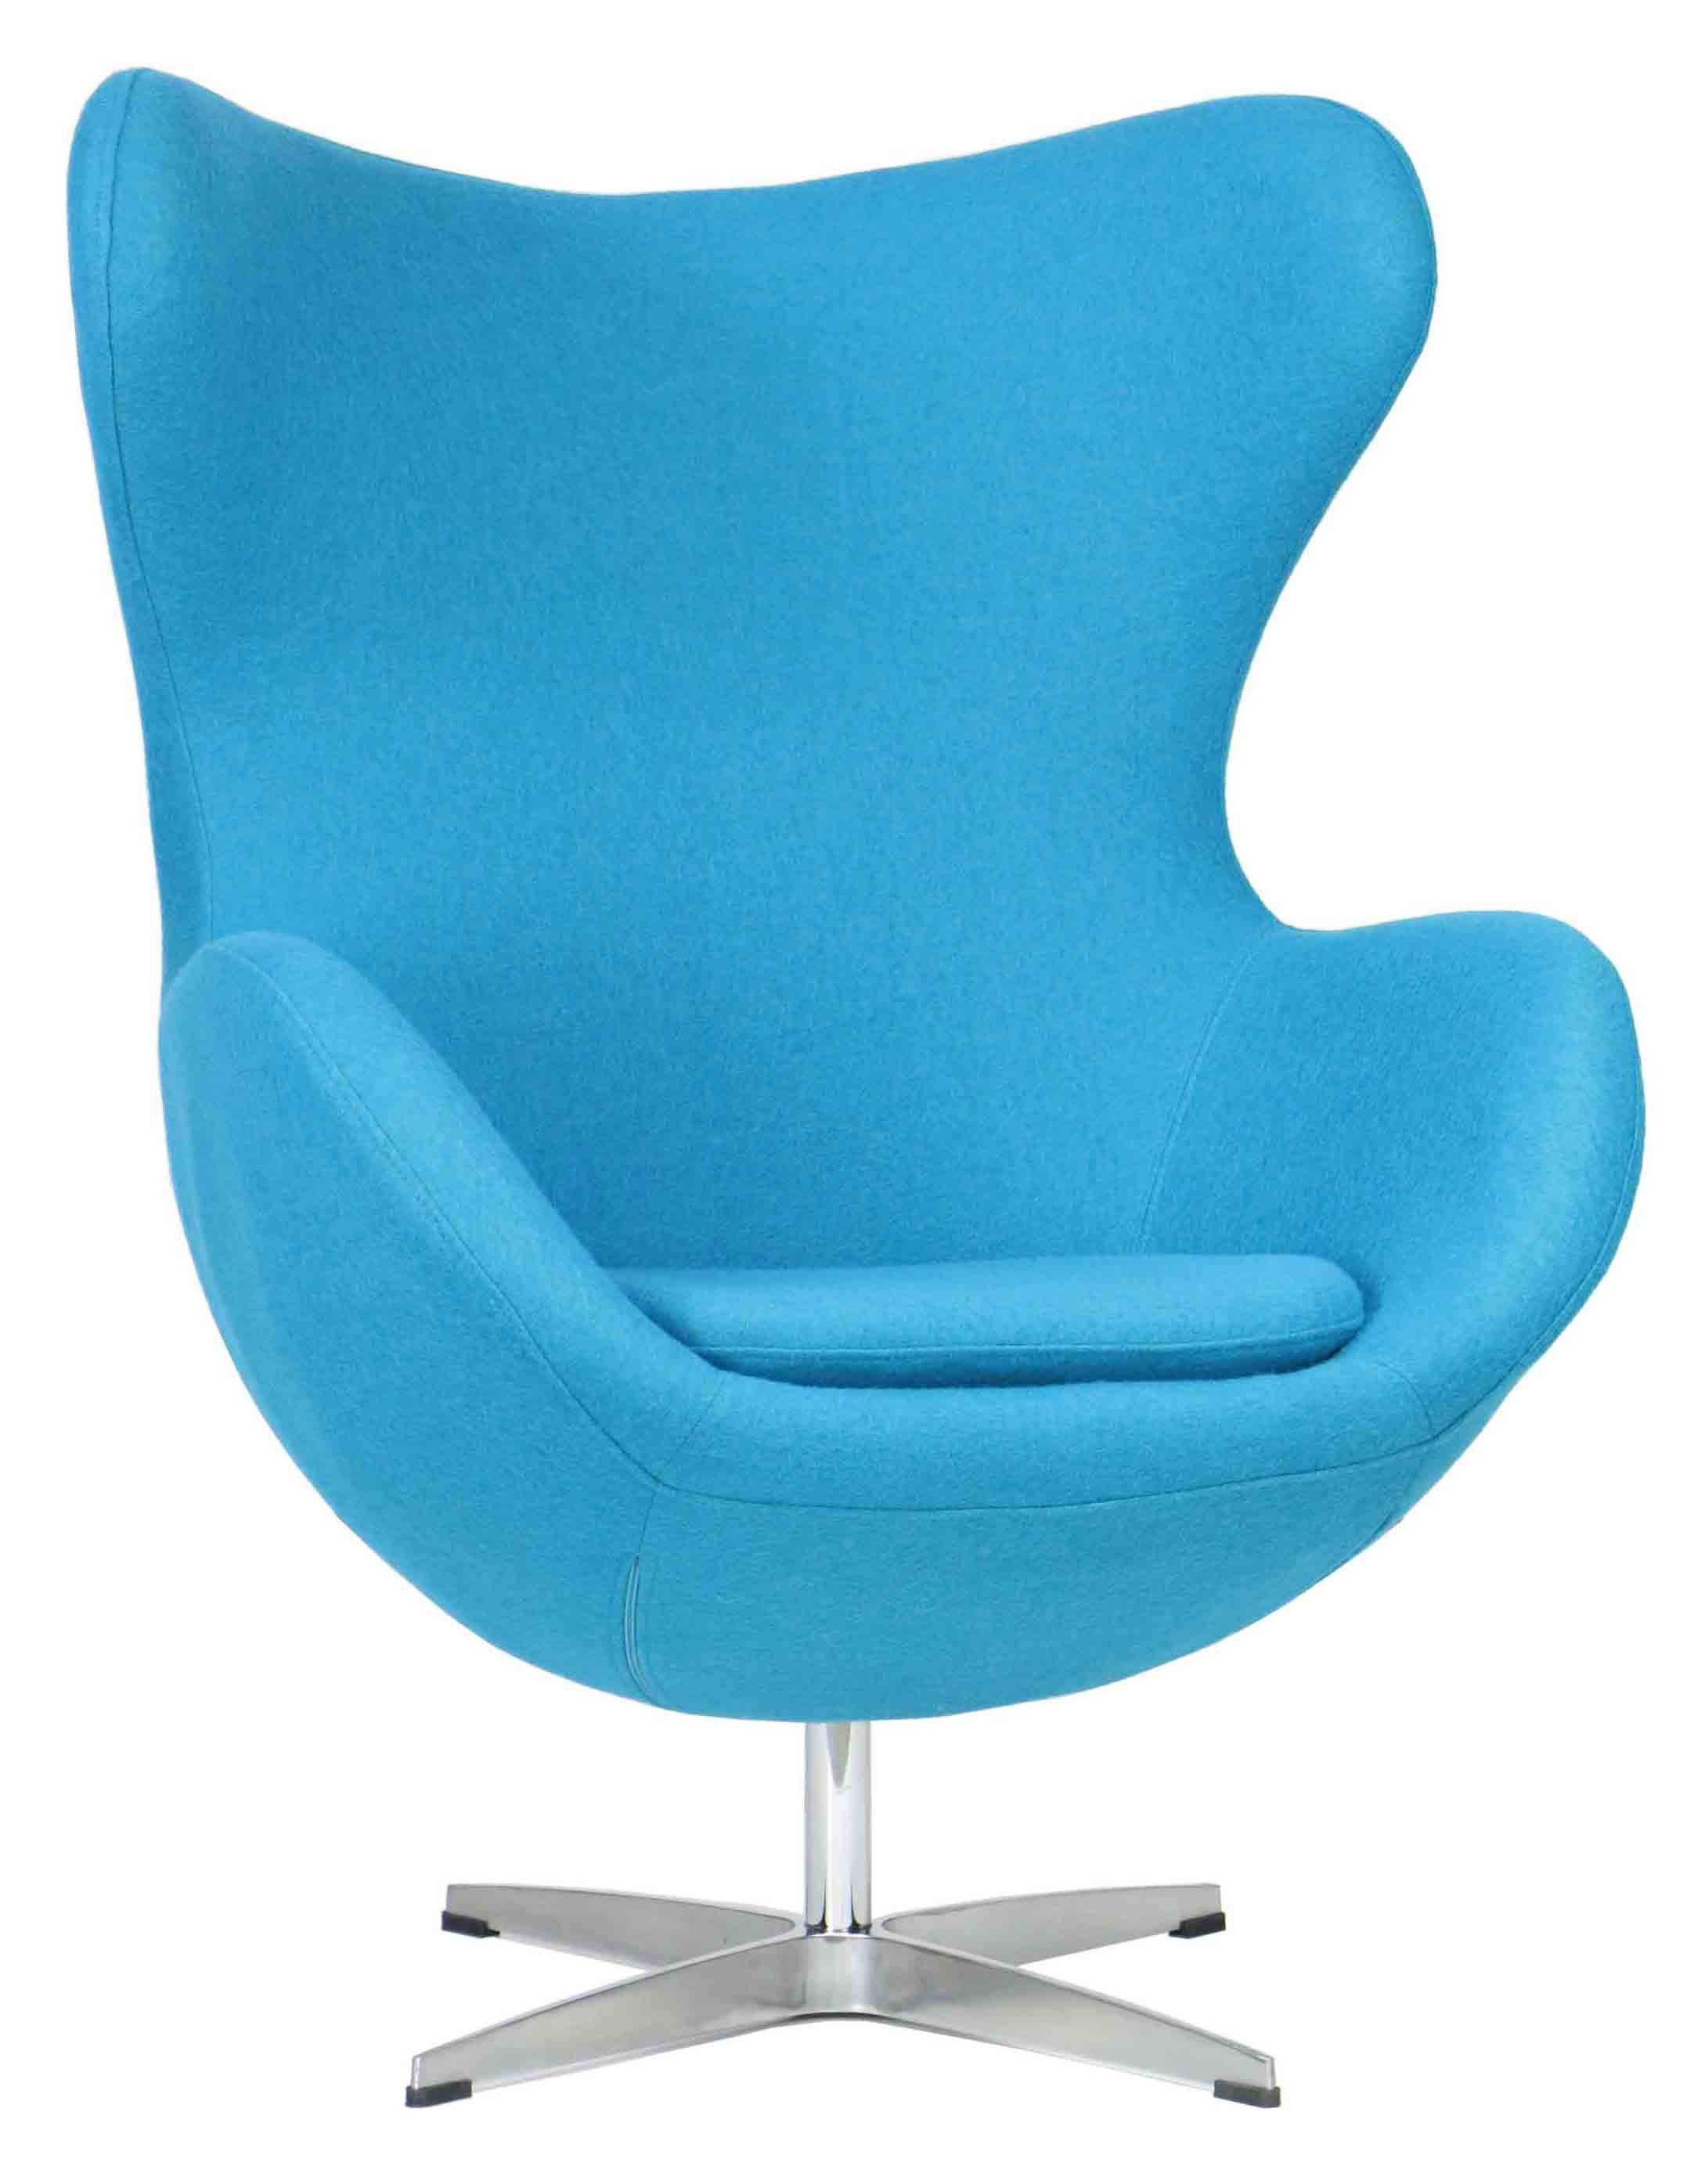 designer replica egg chair in blue furniture home d cor fortytwo. Black Bedroom Furniture Sets. Home Design Ideas